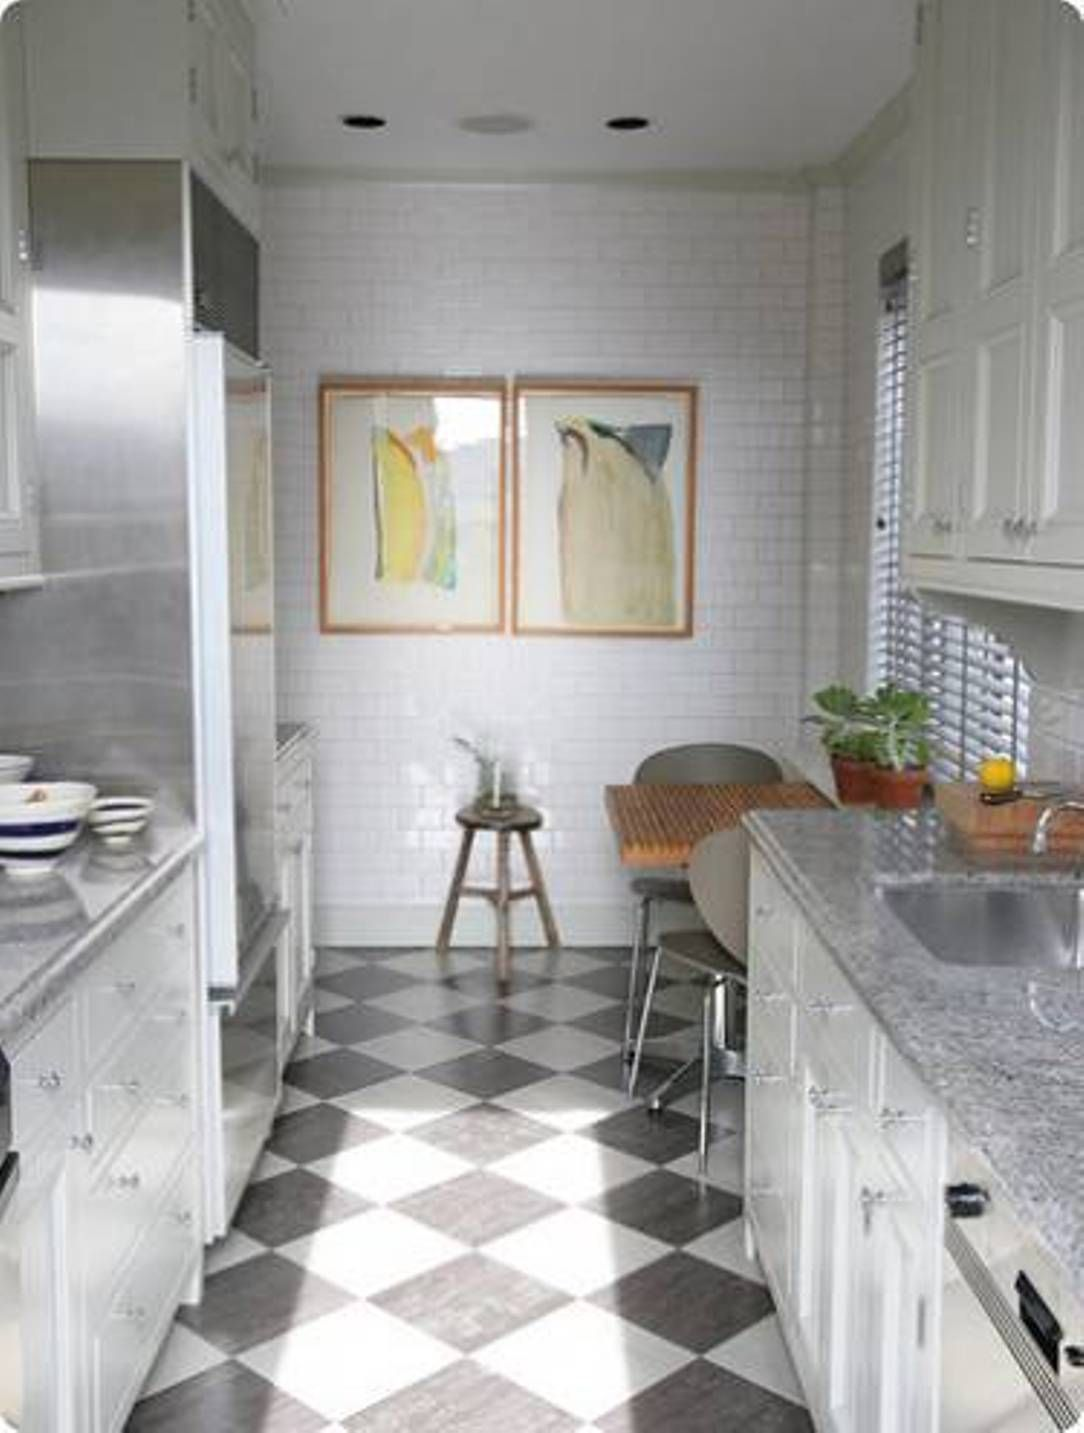 White Floor Kitchen The Gray And White Floor Is More Calming Than The Stark Black And